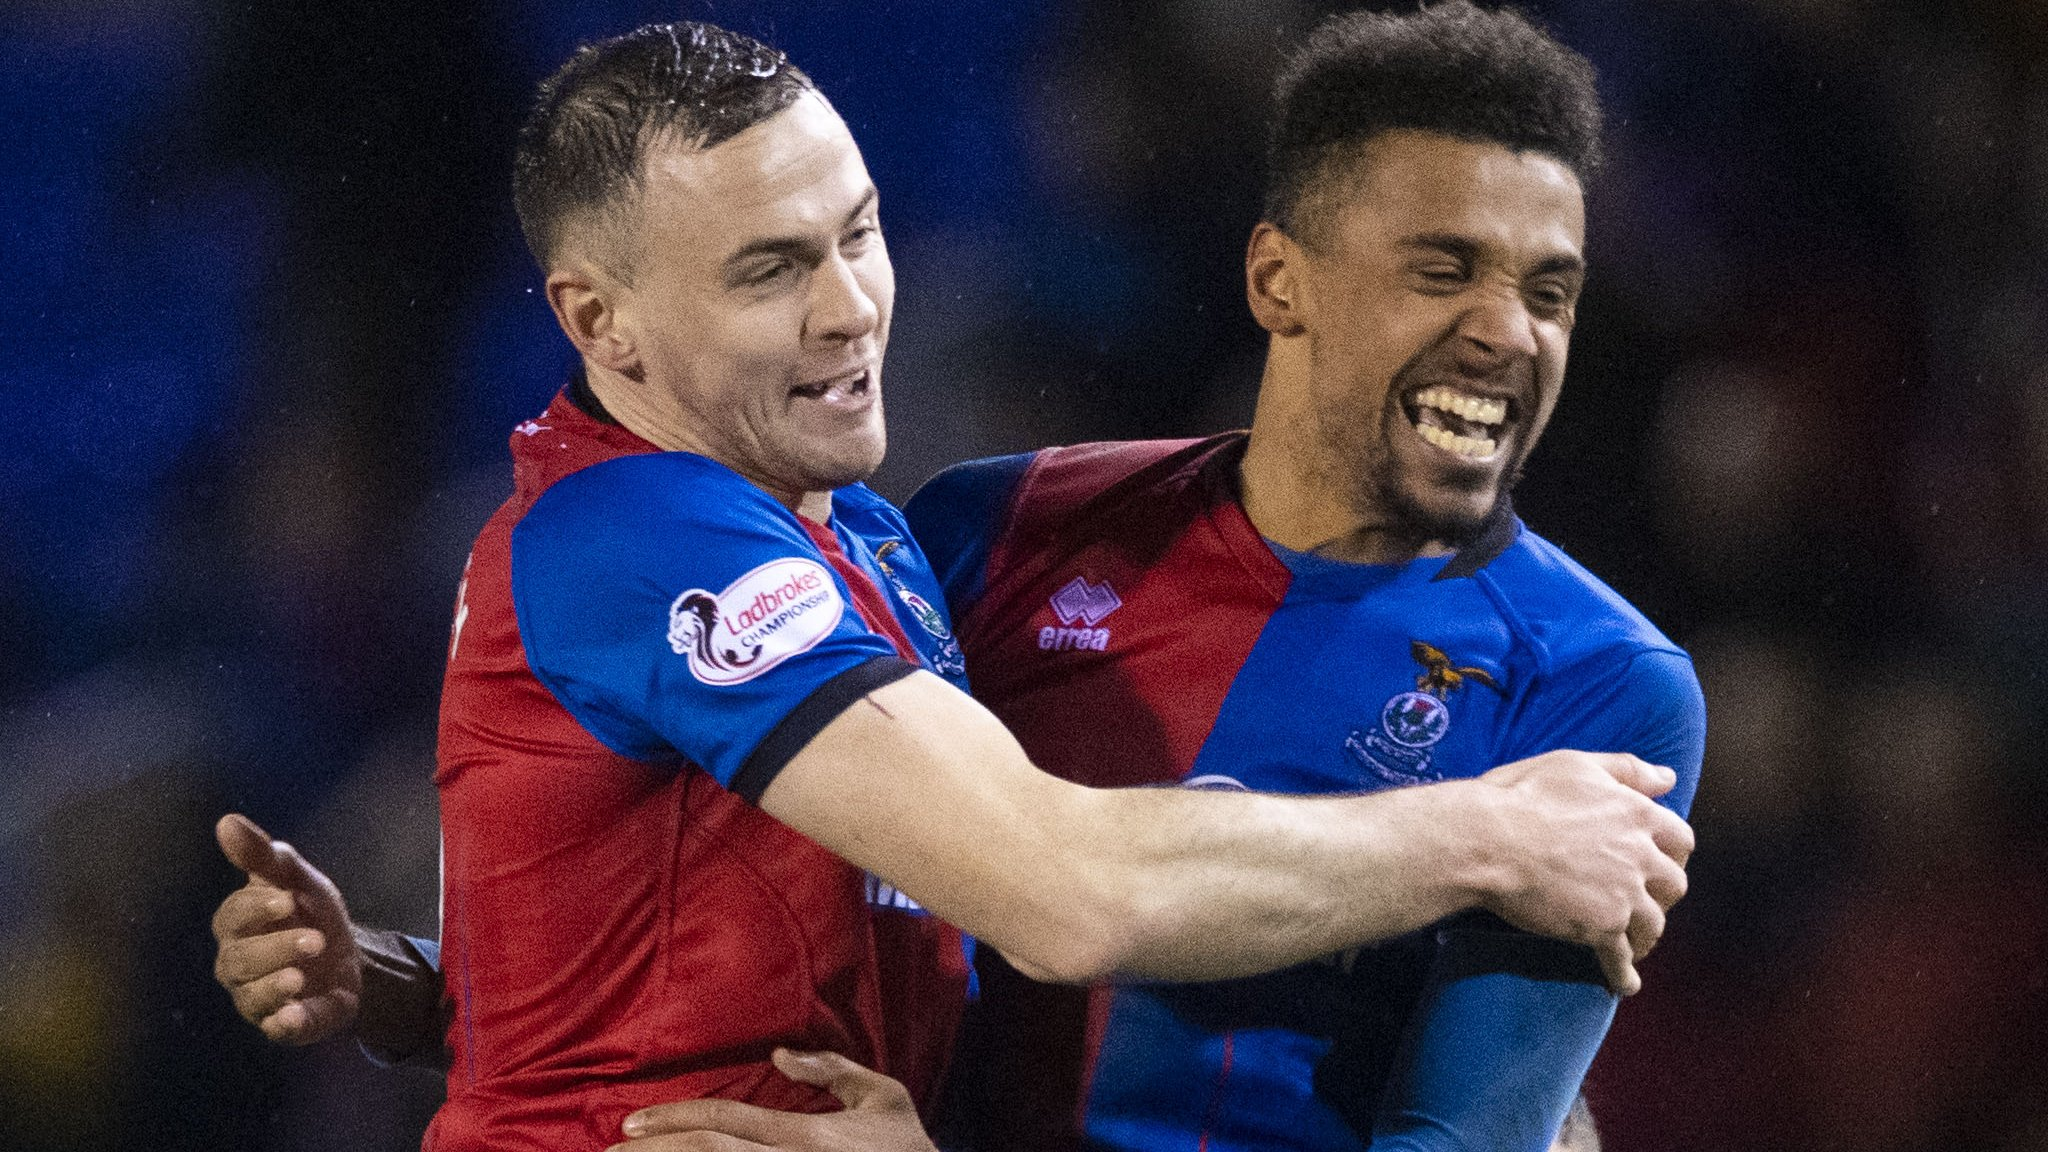 Inverness 2-2 Ross County (5-4 pens): Inverness set up Dundee United tie